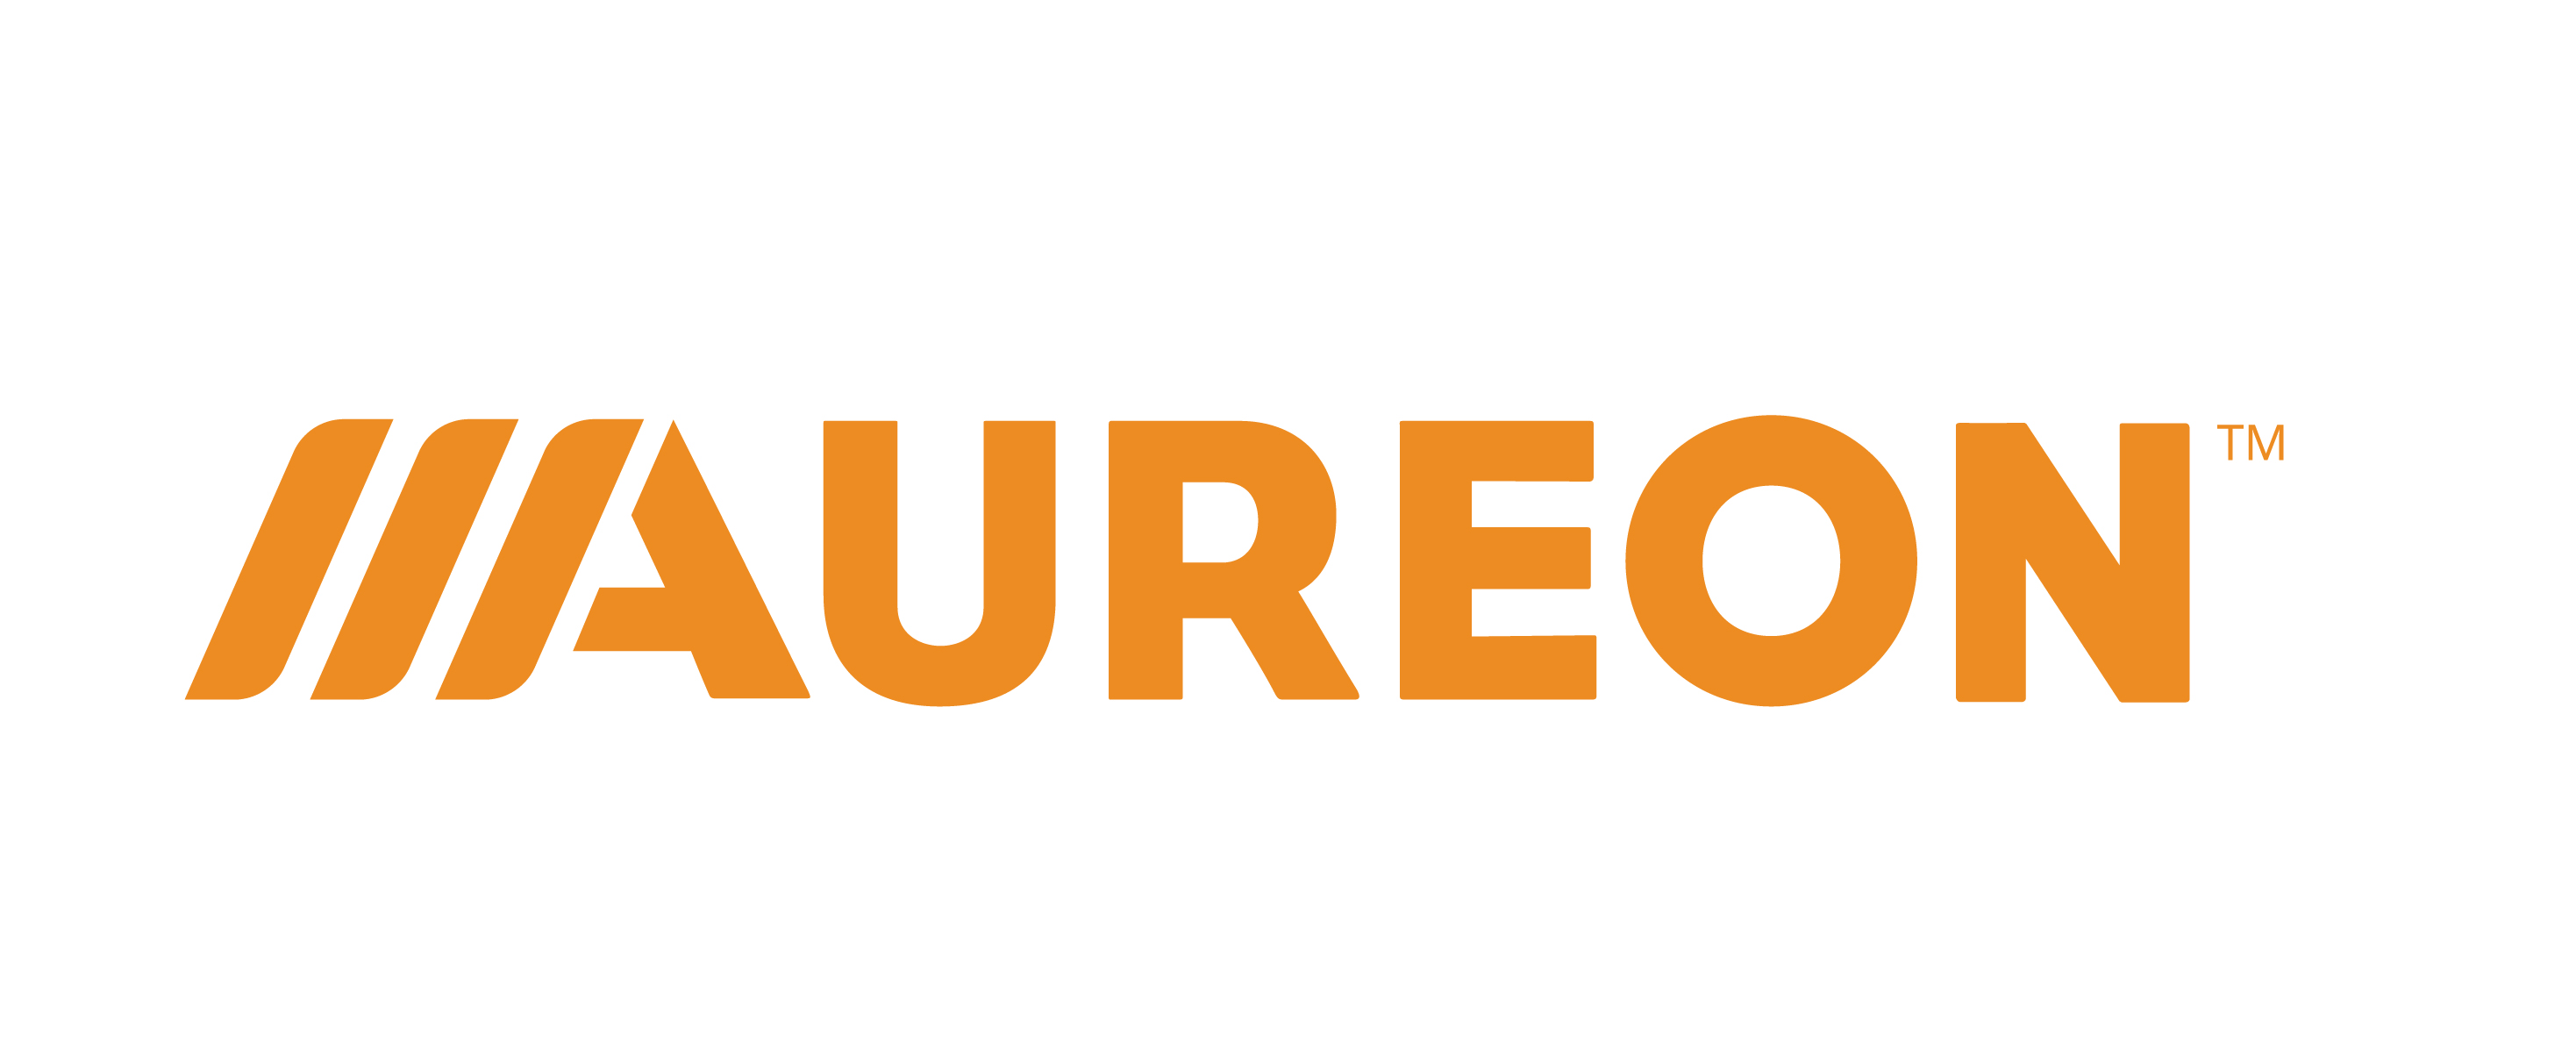 Ins Family Of Companies Announce Rebrand To Aureon